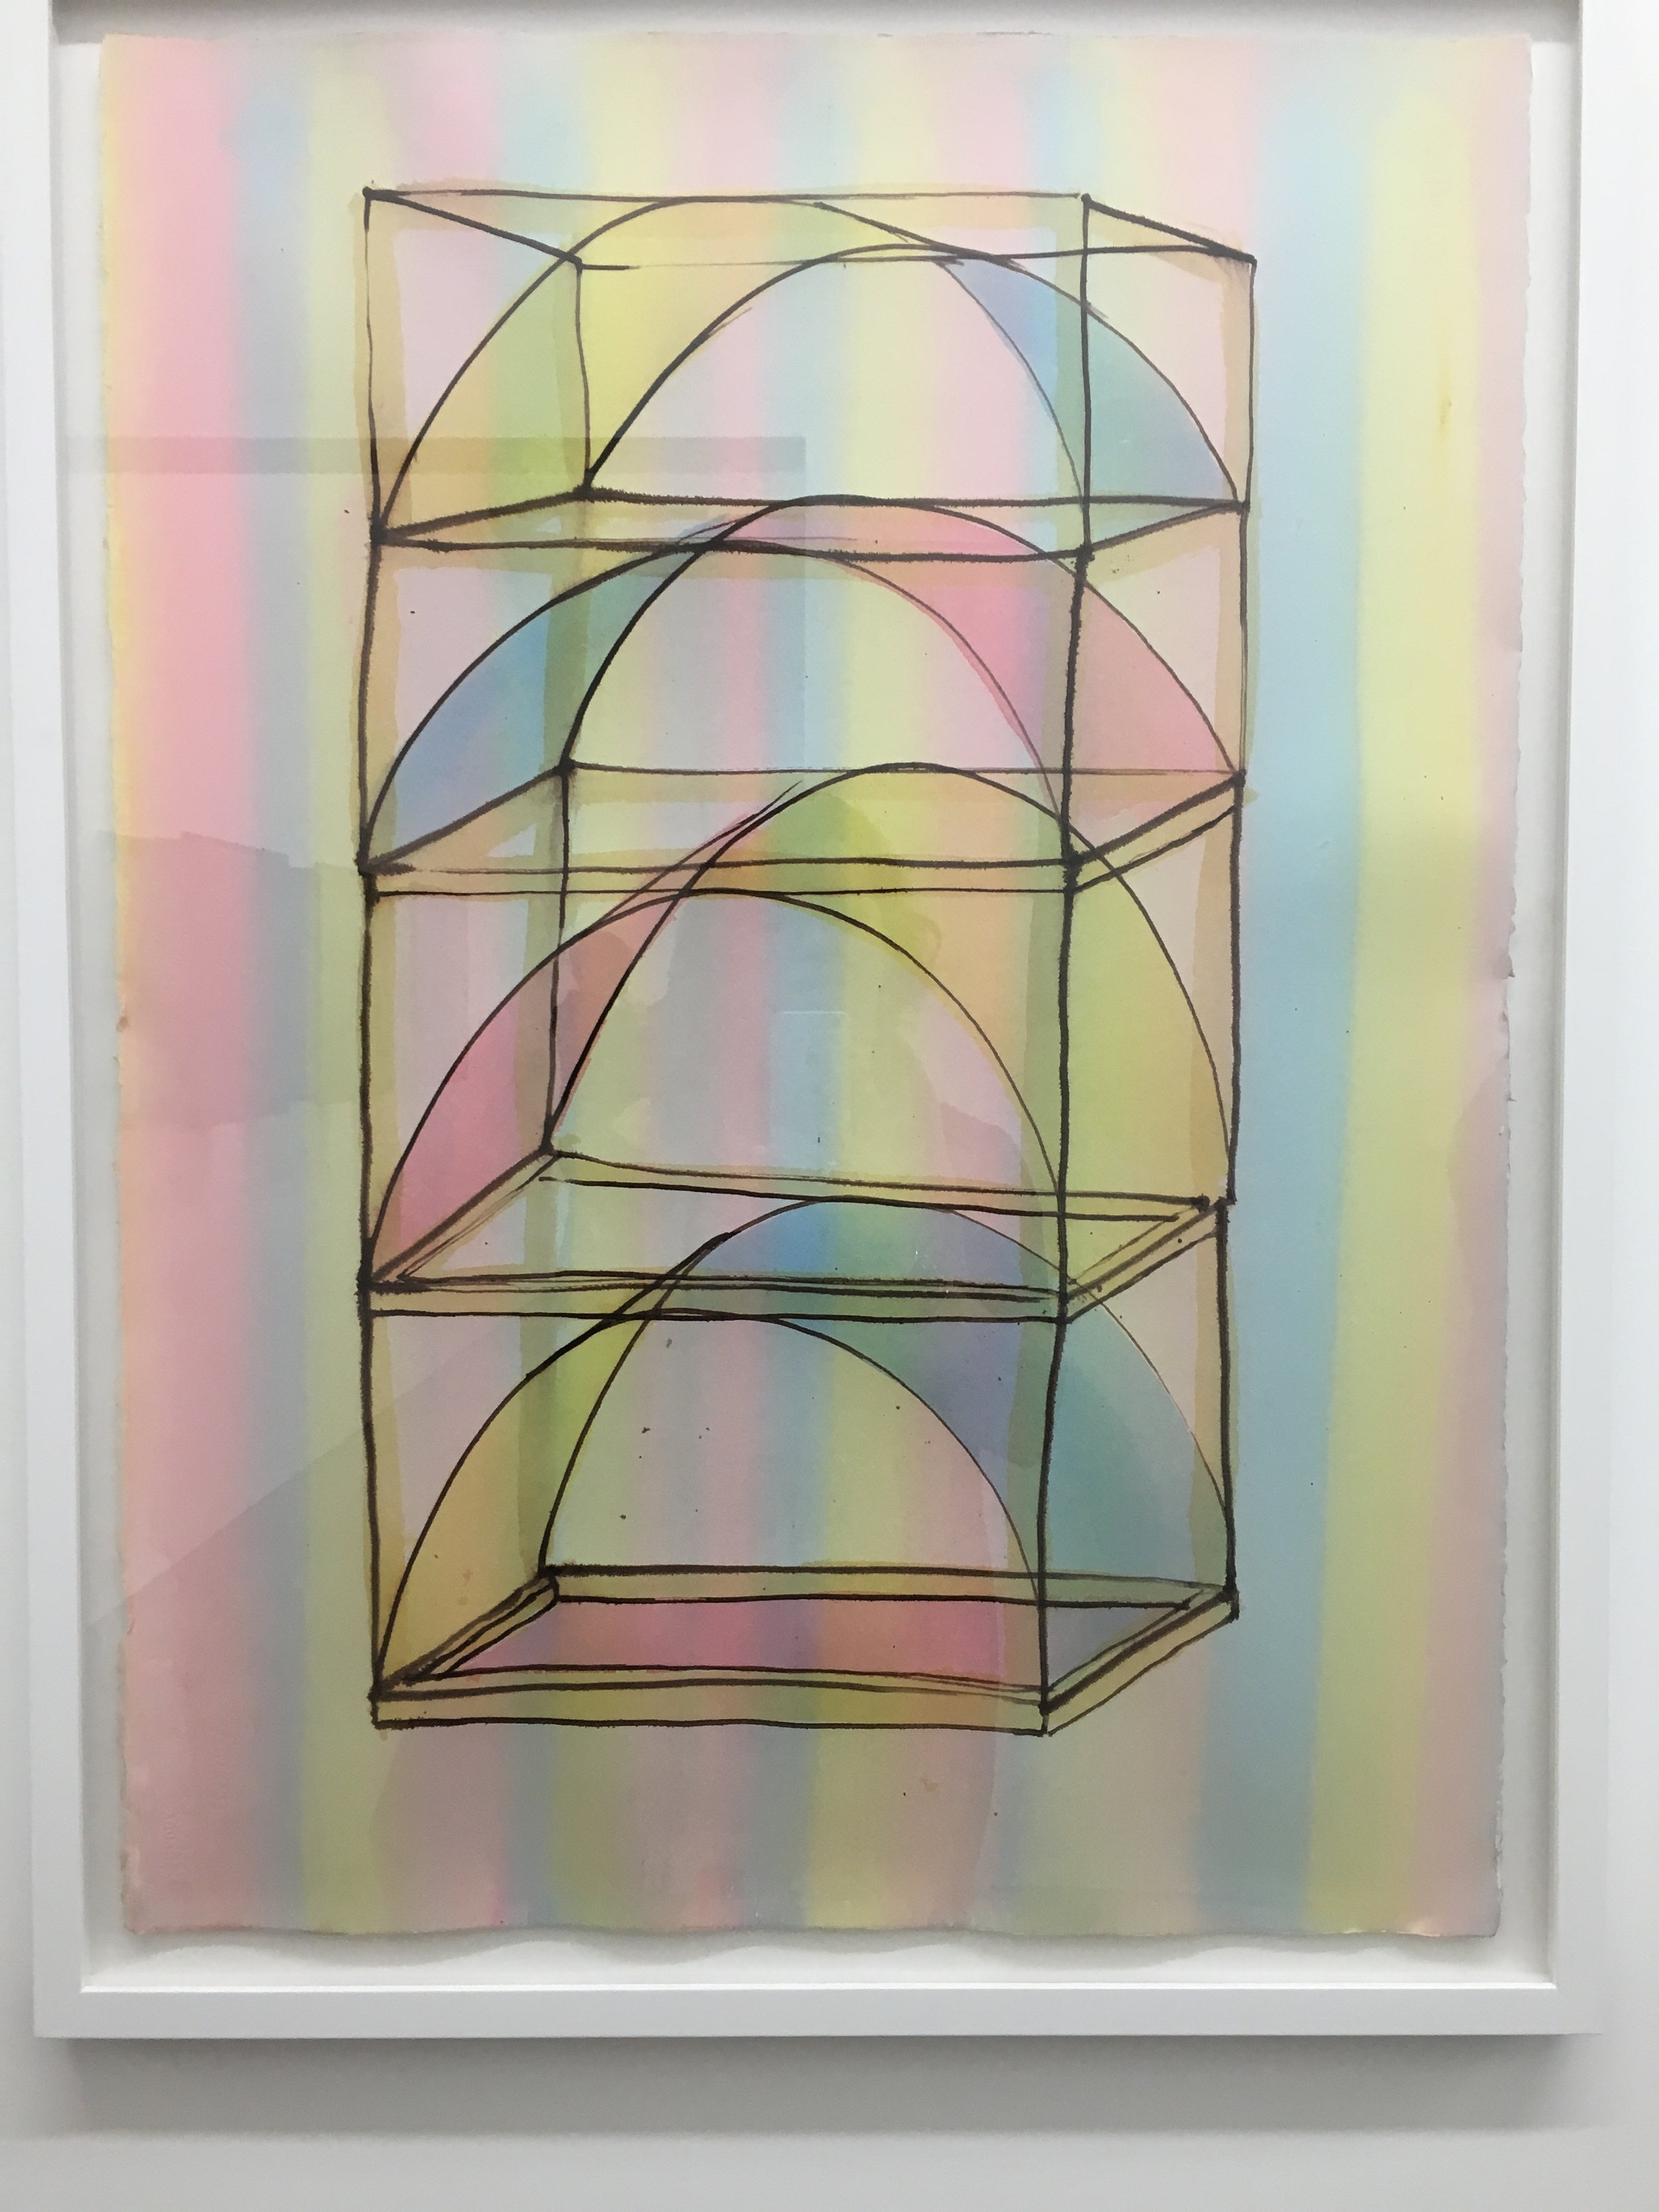 I heart Thomas Linder's work. Love this illustration of a large sculpture at IBID.